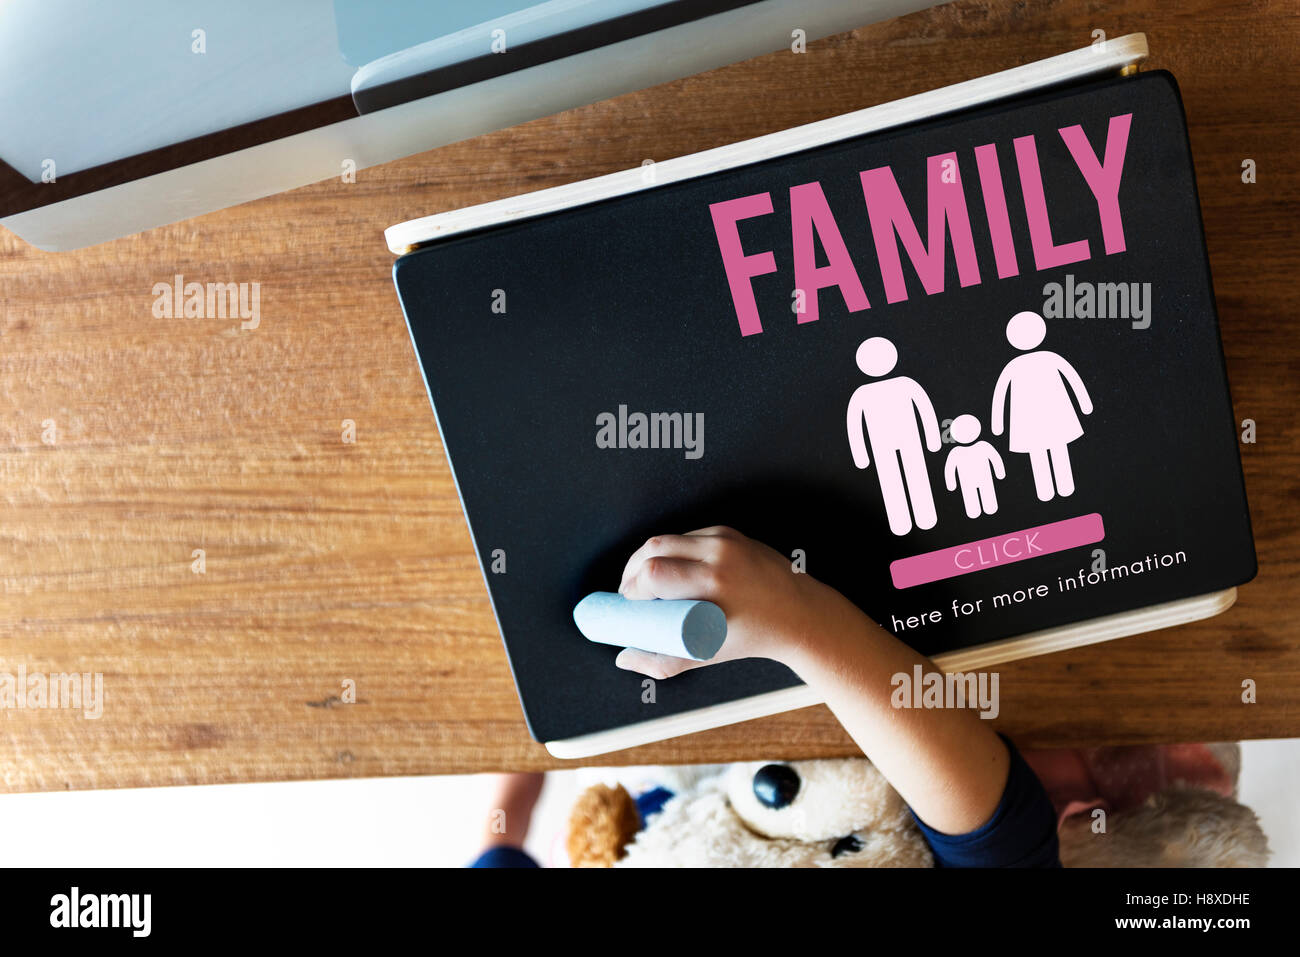 Family Care Genealogy Love Related Home Concept - Stock Image